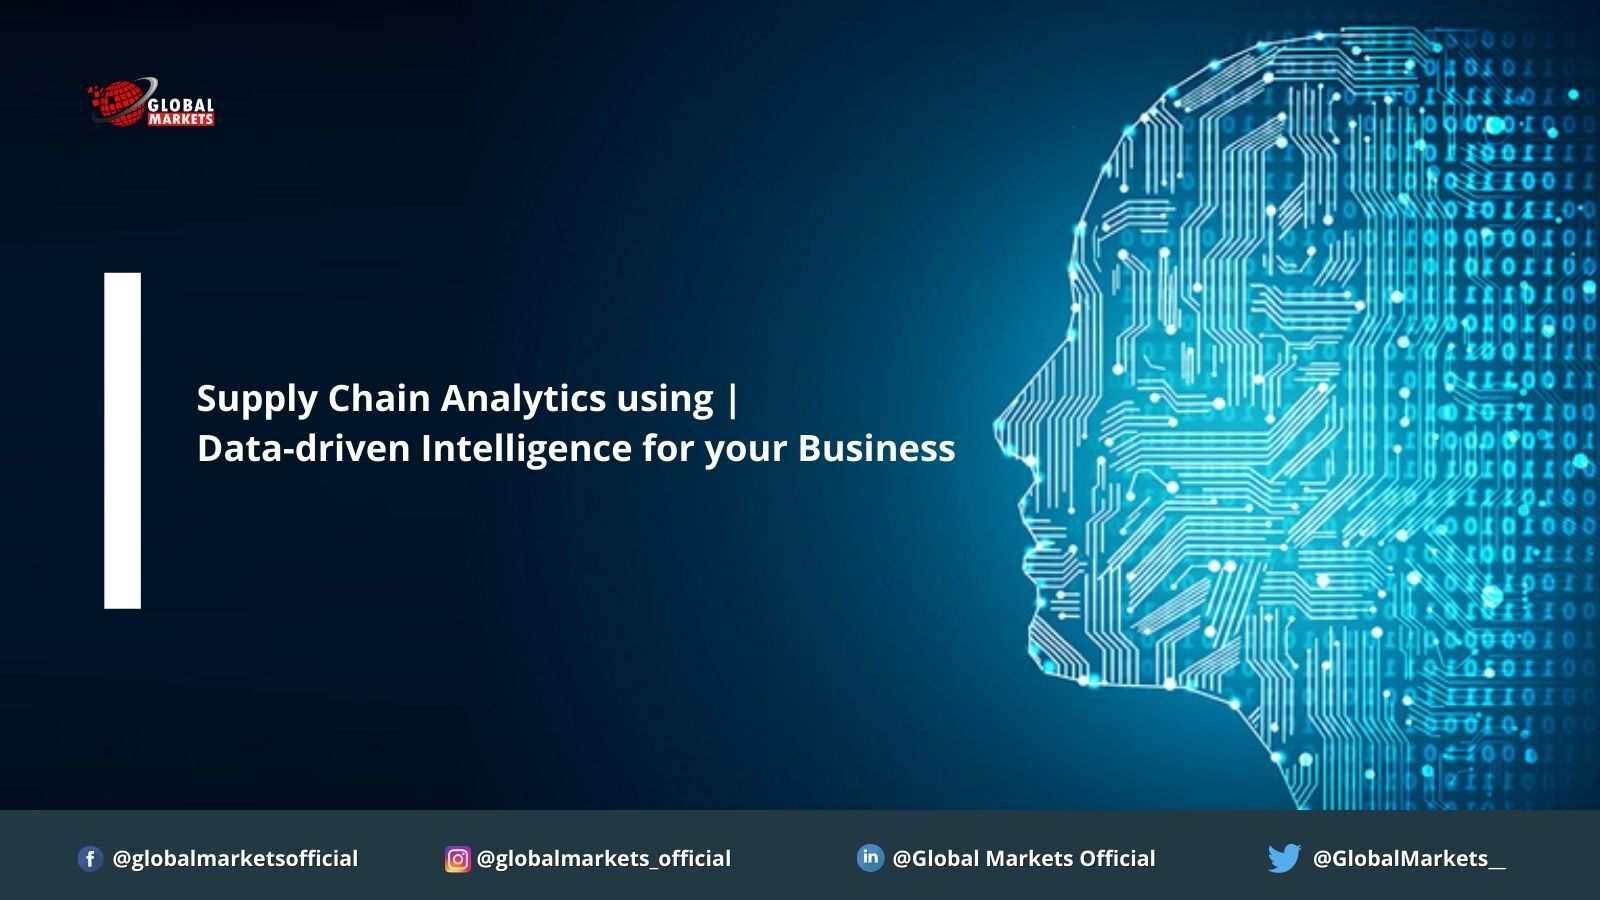 Supply Chain Analytics using Data-driven intelligence for your business